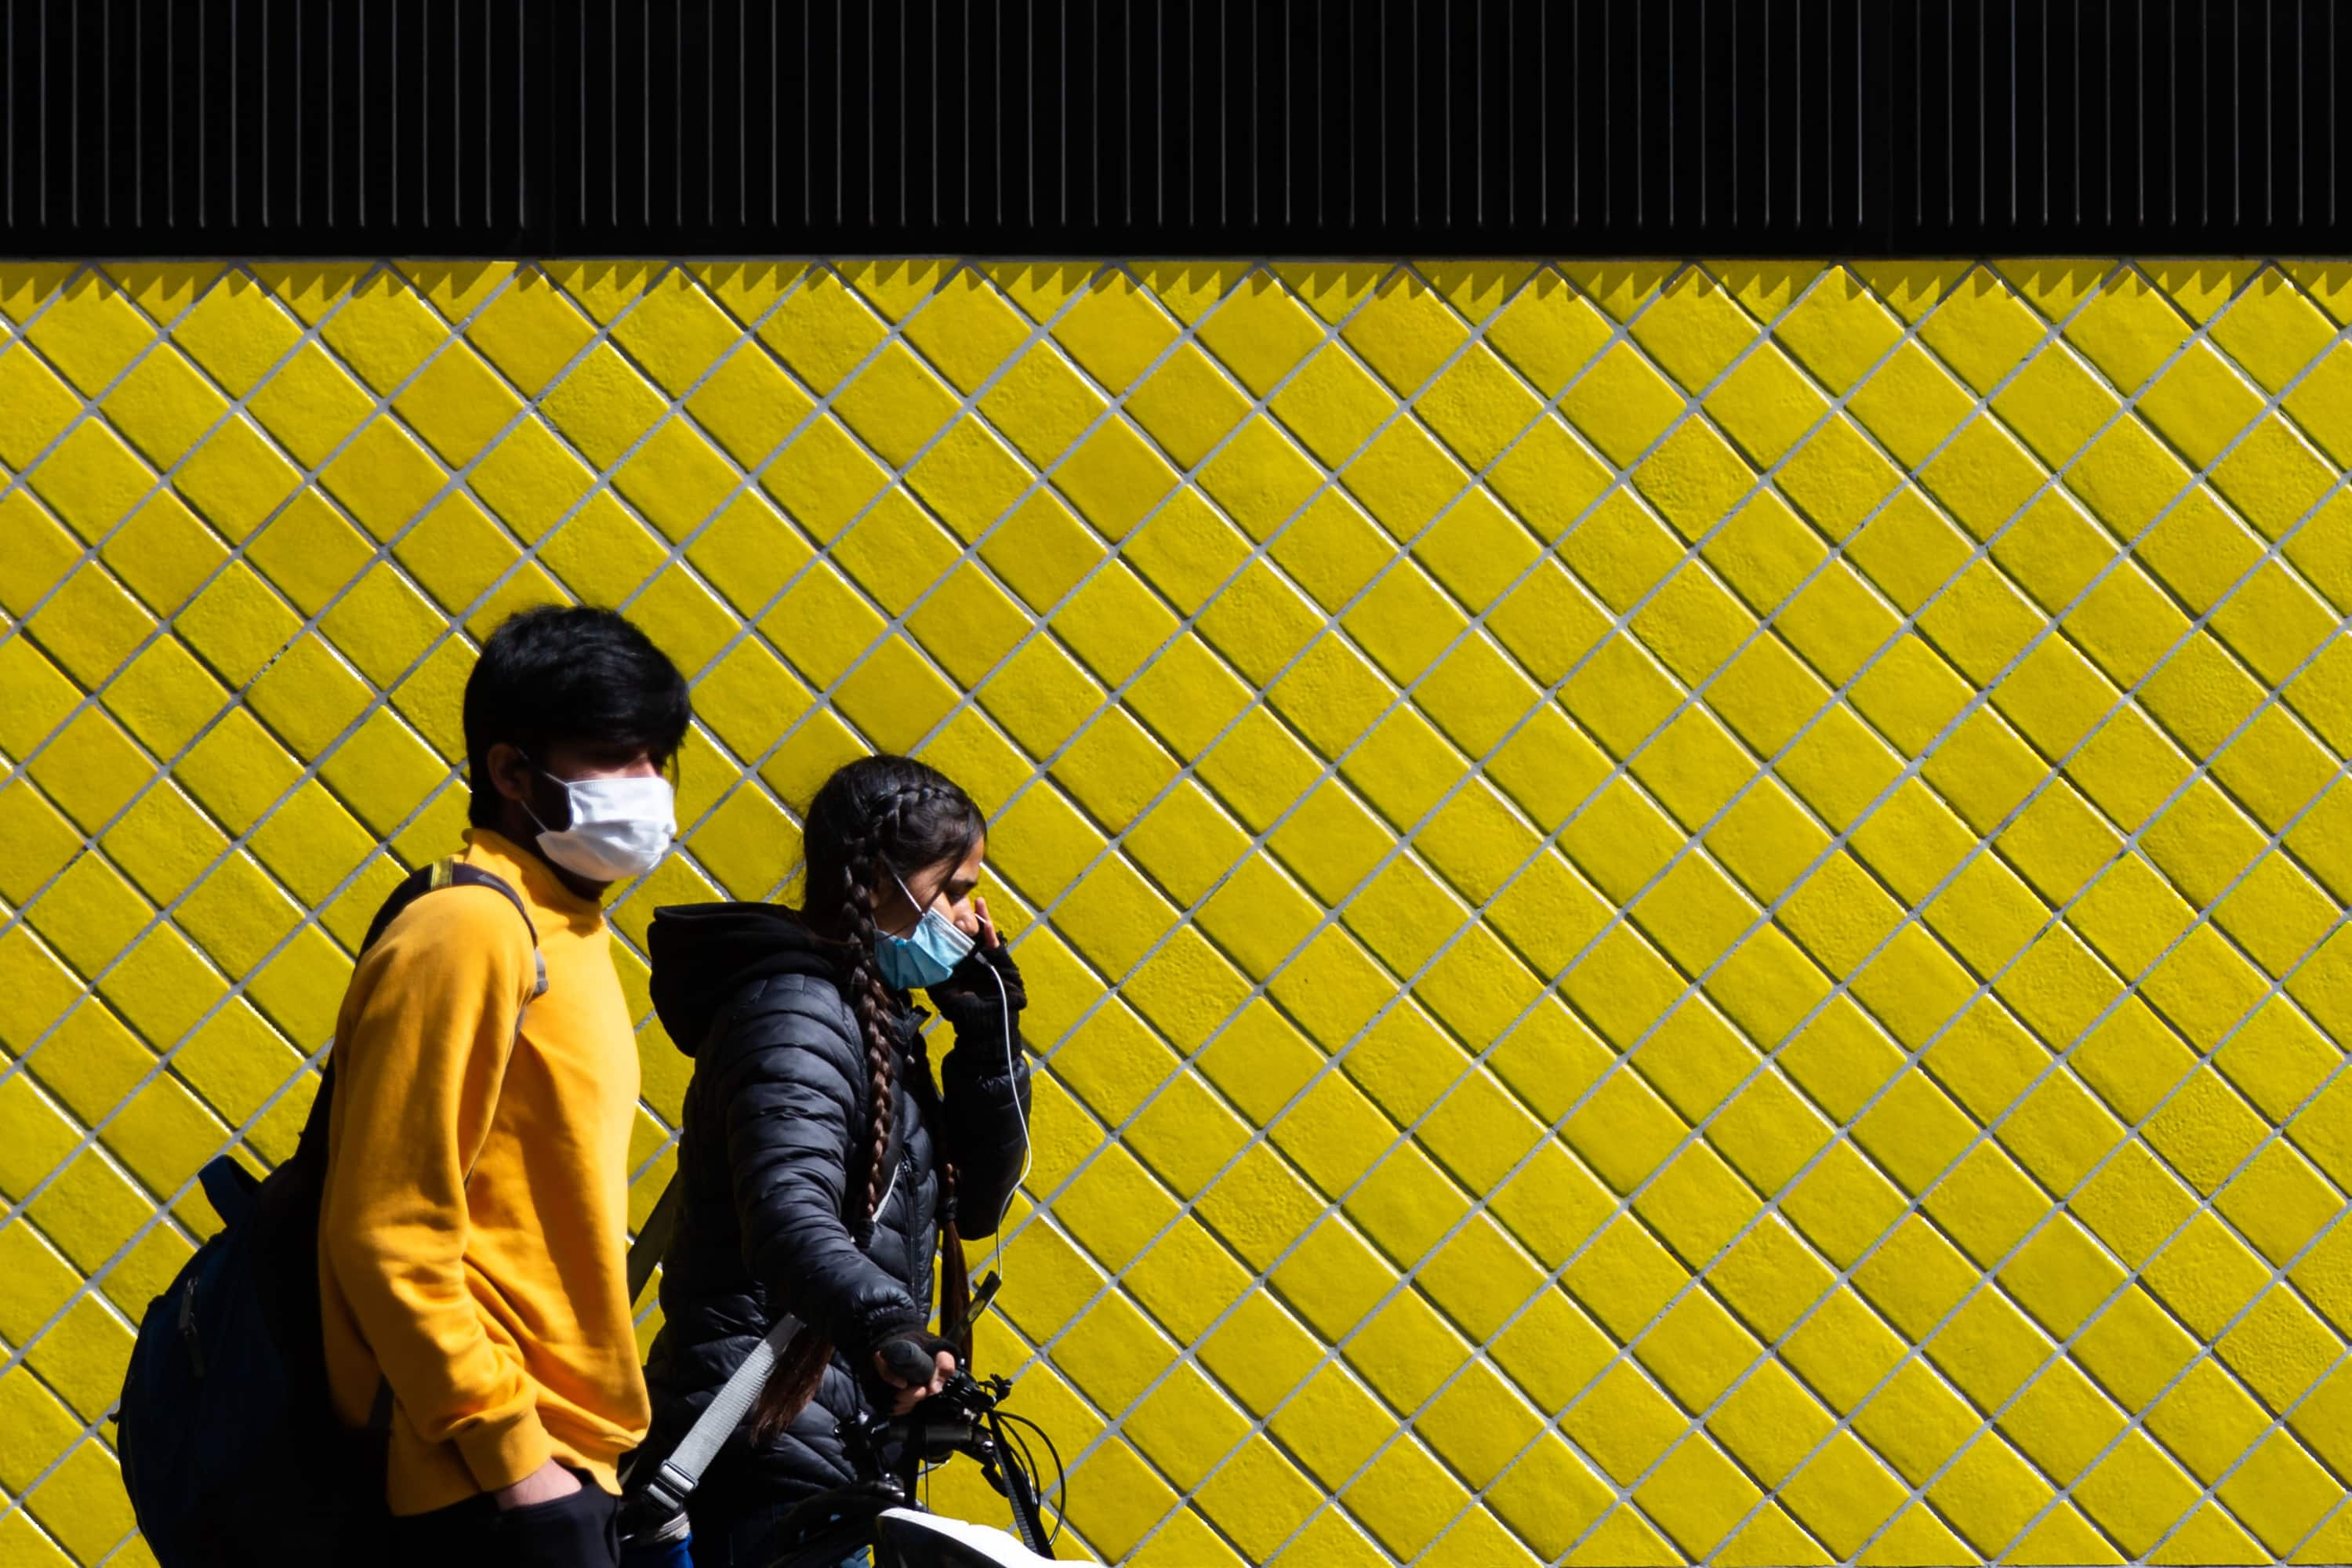 Locals are seen walking by a bright yellow tiled wall during COVID-19 in Melbourne, Australia. Victoria records a further 76 cases of Coronavirus over the past 24 hours, an increase from yesterday along with 11 deaths. This comes amid news that AstraZeneca pauses vaccine study.